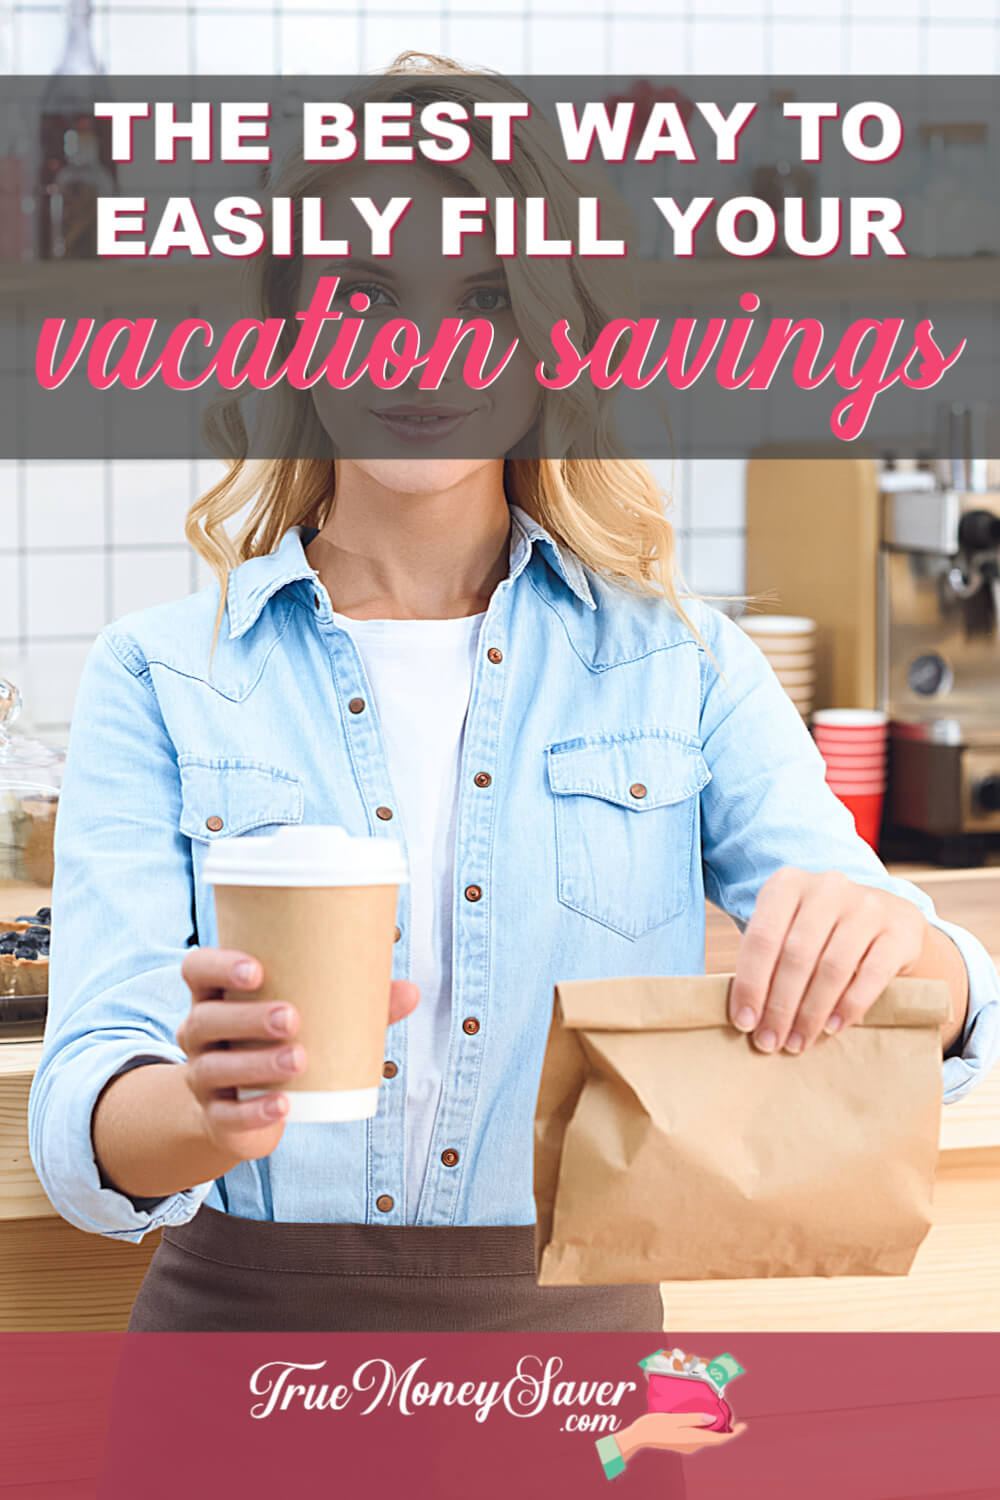 The Best Way To Easily Fill Your Vacation Savings